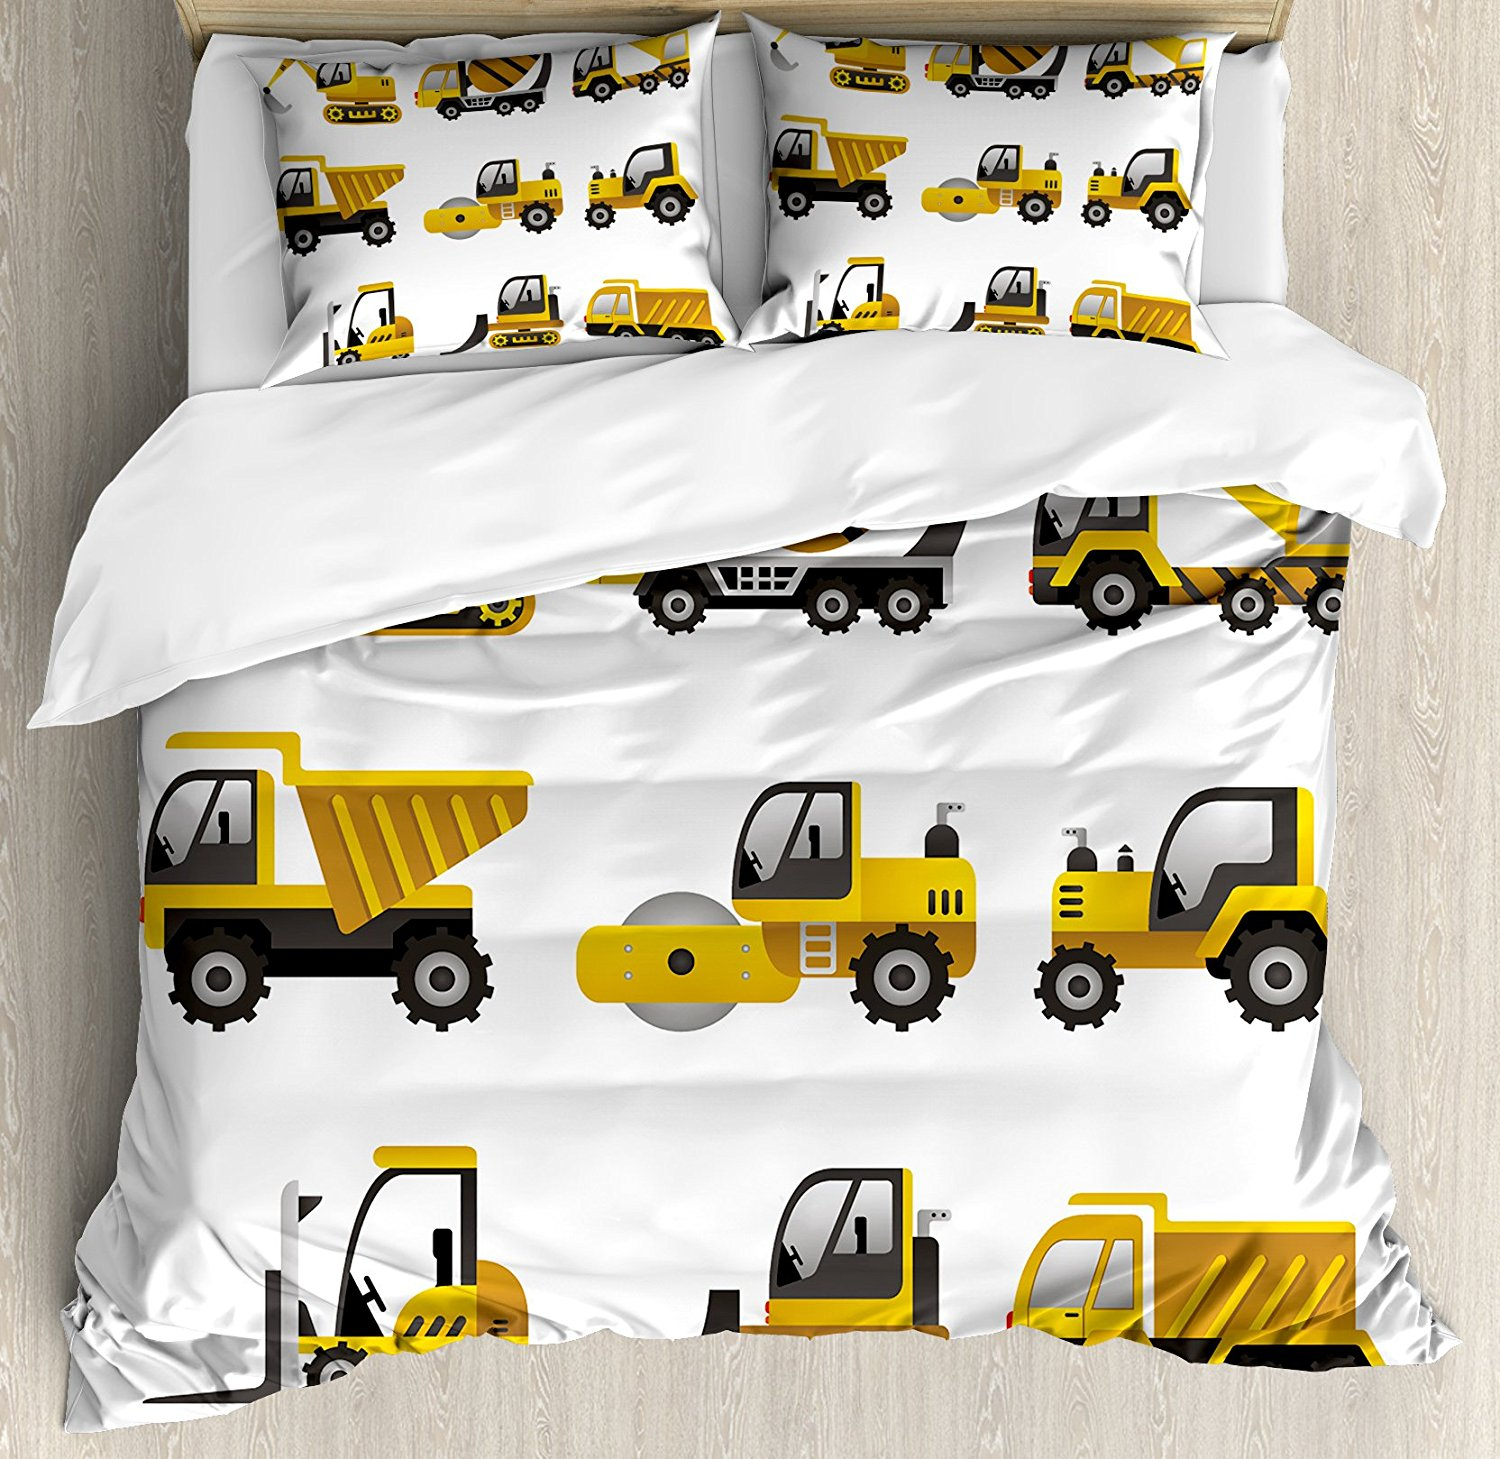 Construction Duvet Cover Set Big Vehicles Icon Collection Engineering Building Theme Clip Art Style 4 Piece